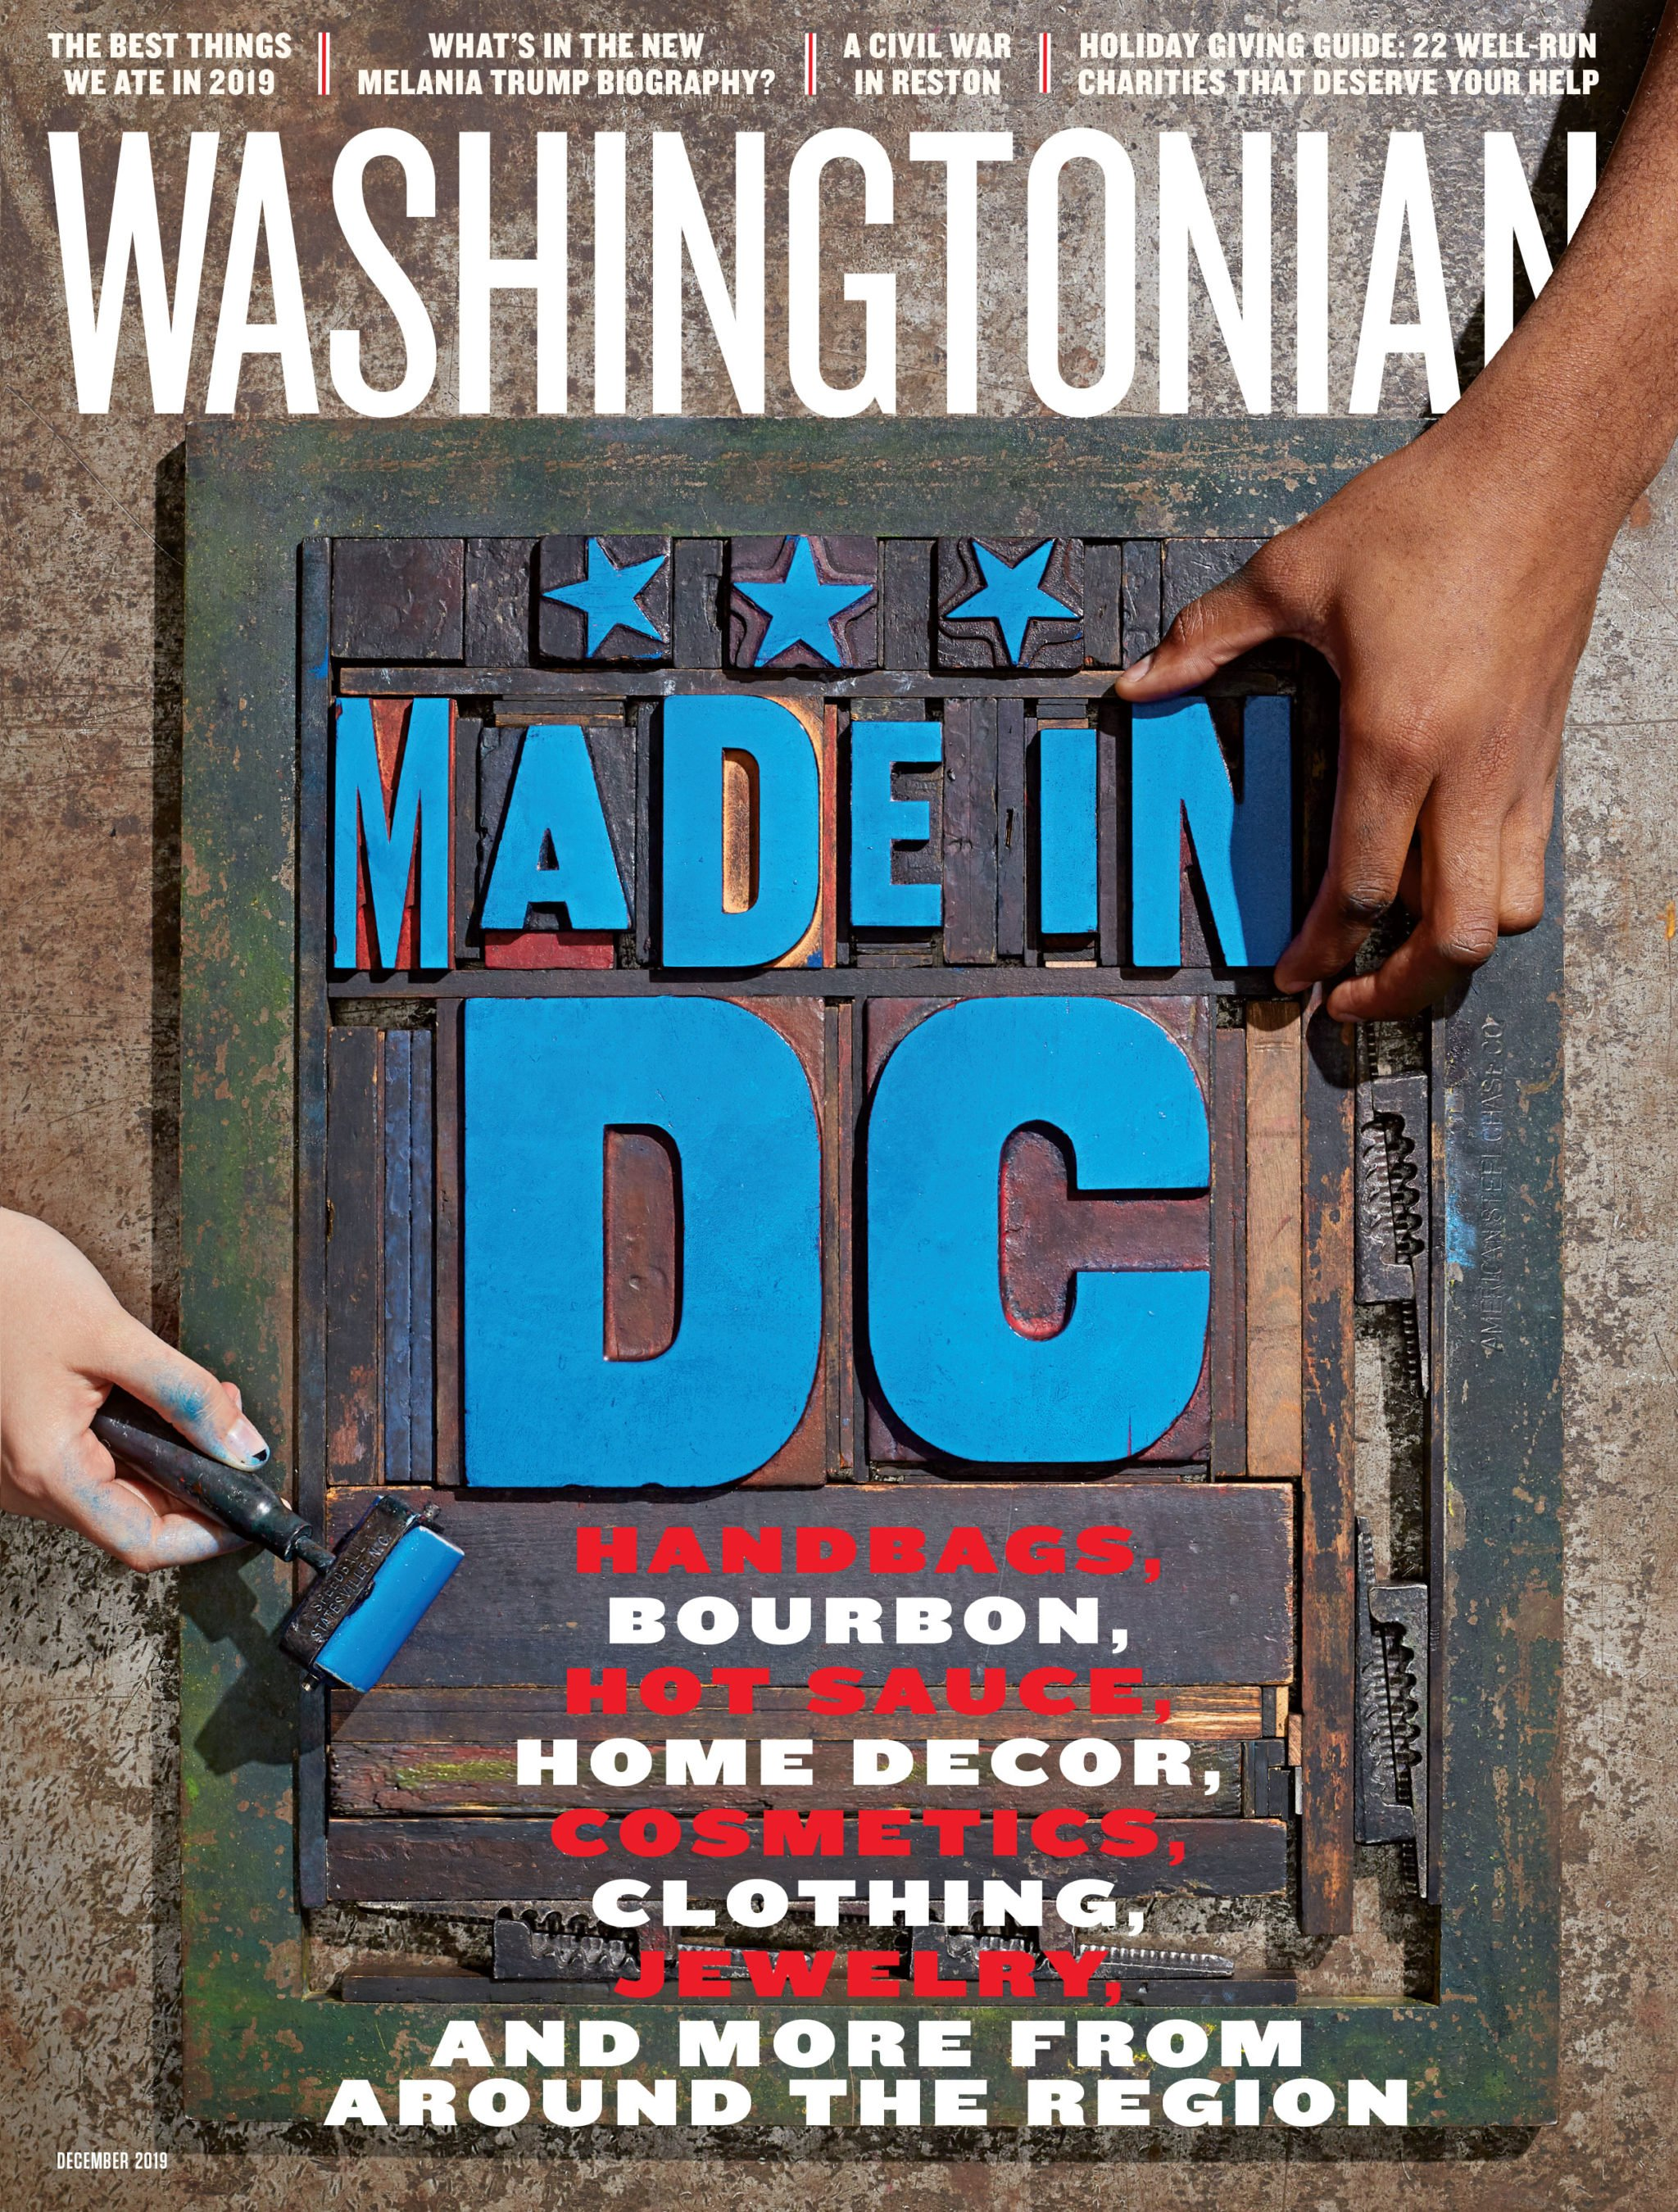 December 2019: Made in DC